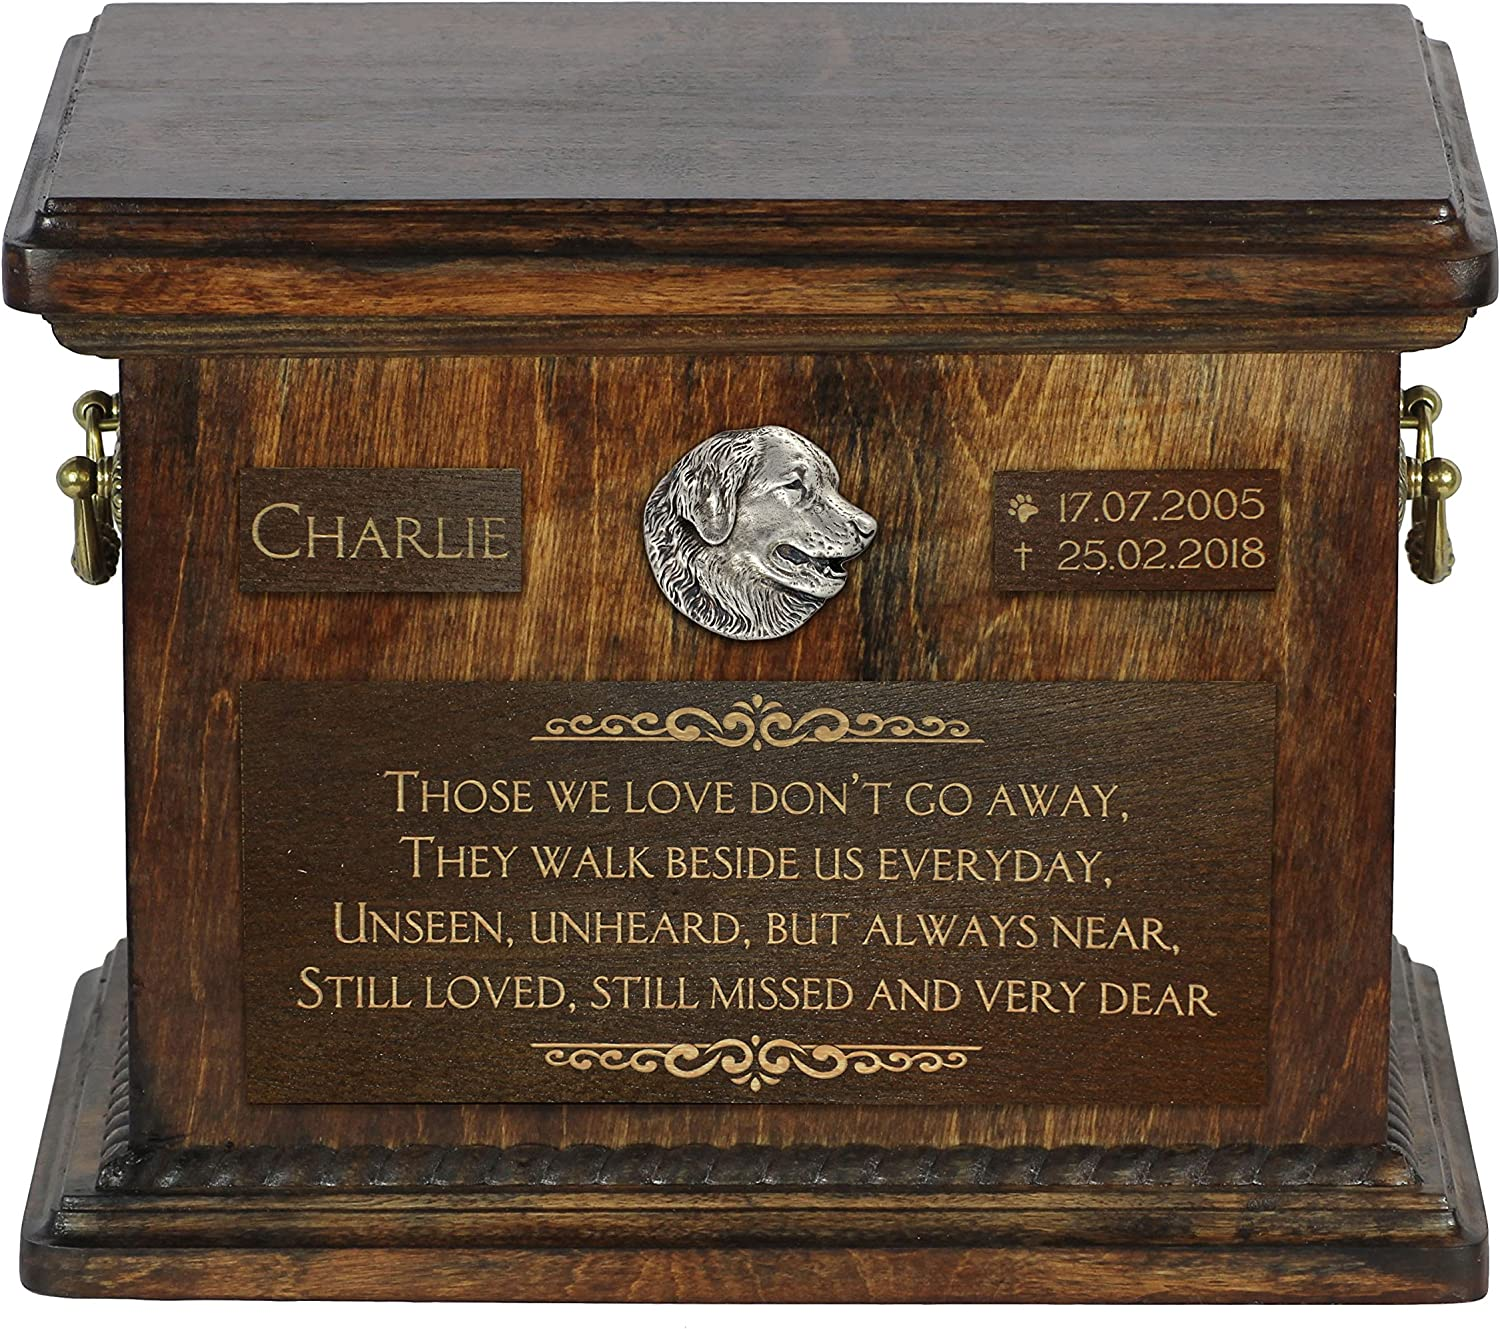 ArtDog Ltd. Leonberger, urn for dog's ashes with relief and sentence with your dog name and date